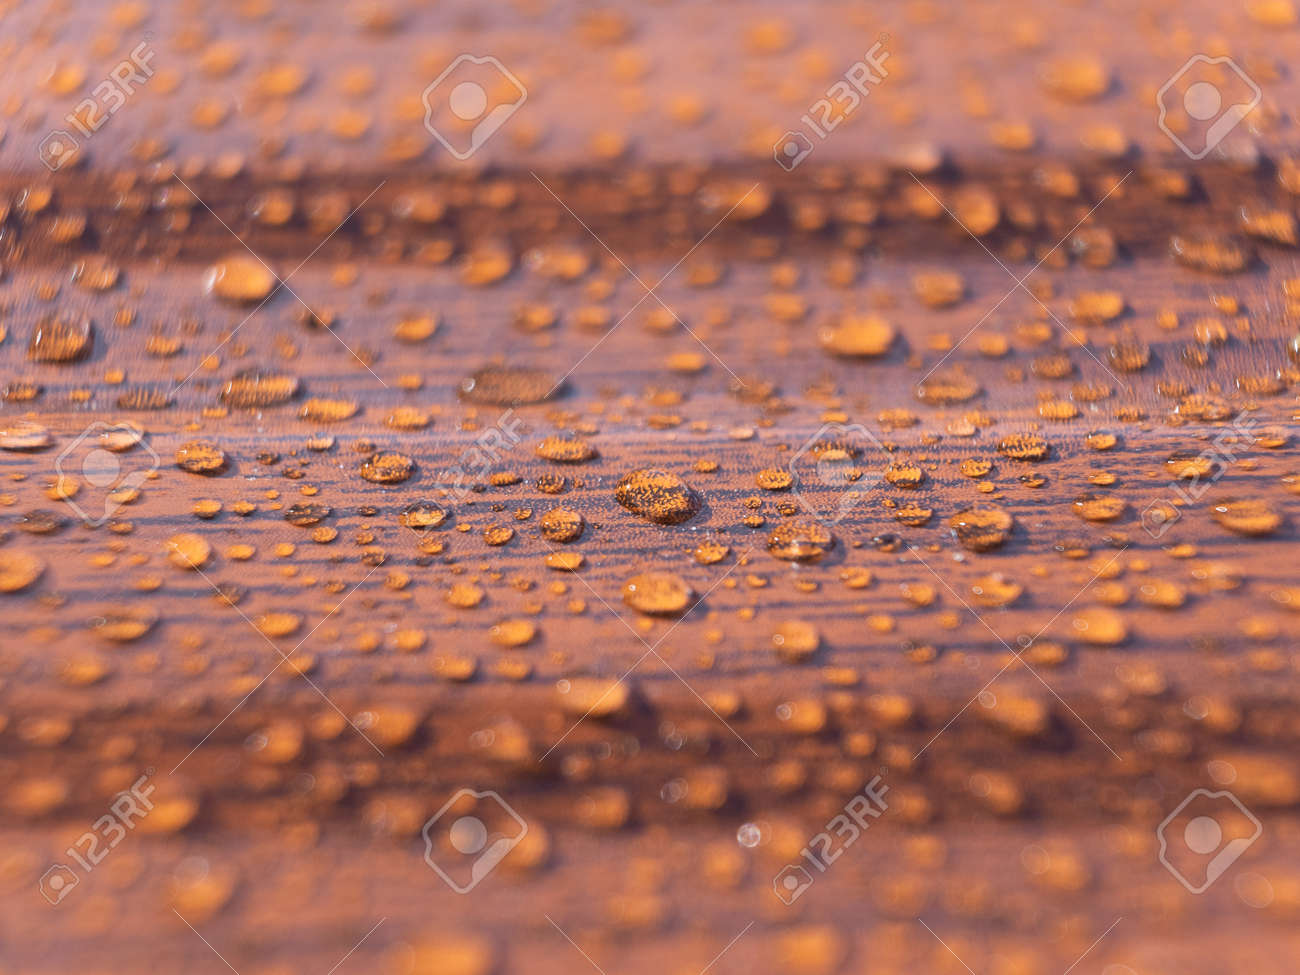 Raindrops on the metal profile sheet. Brown profiled metal sheet with dew drops. - 170713338